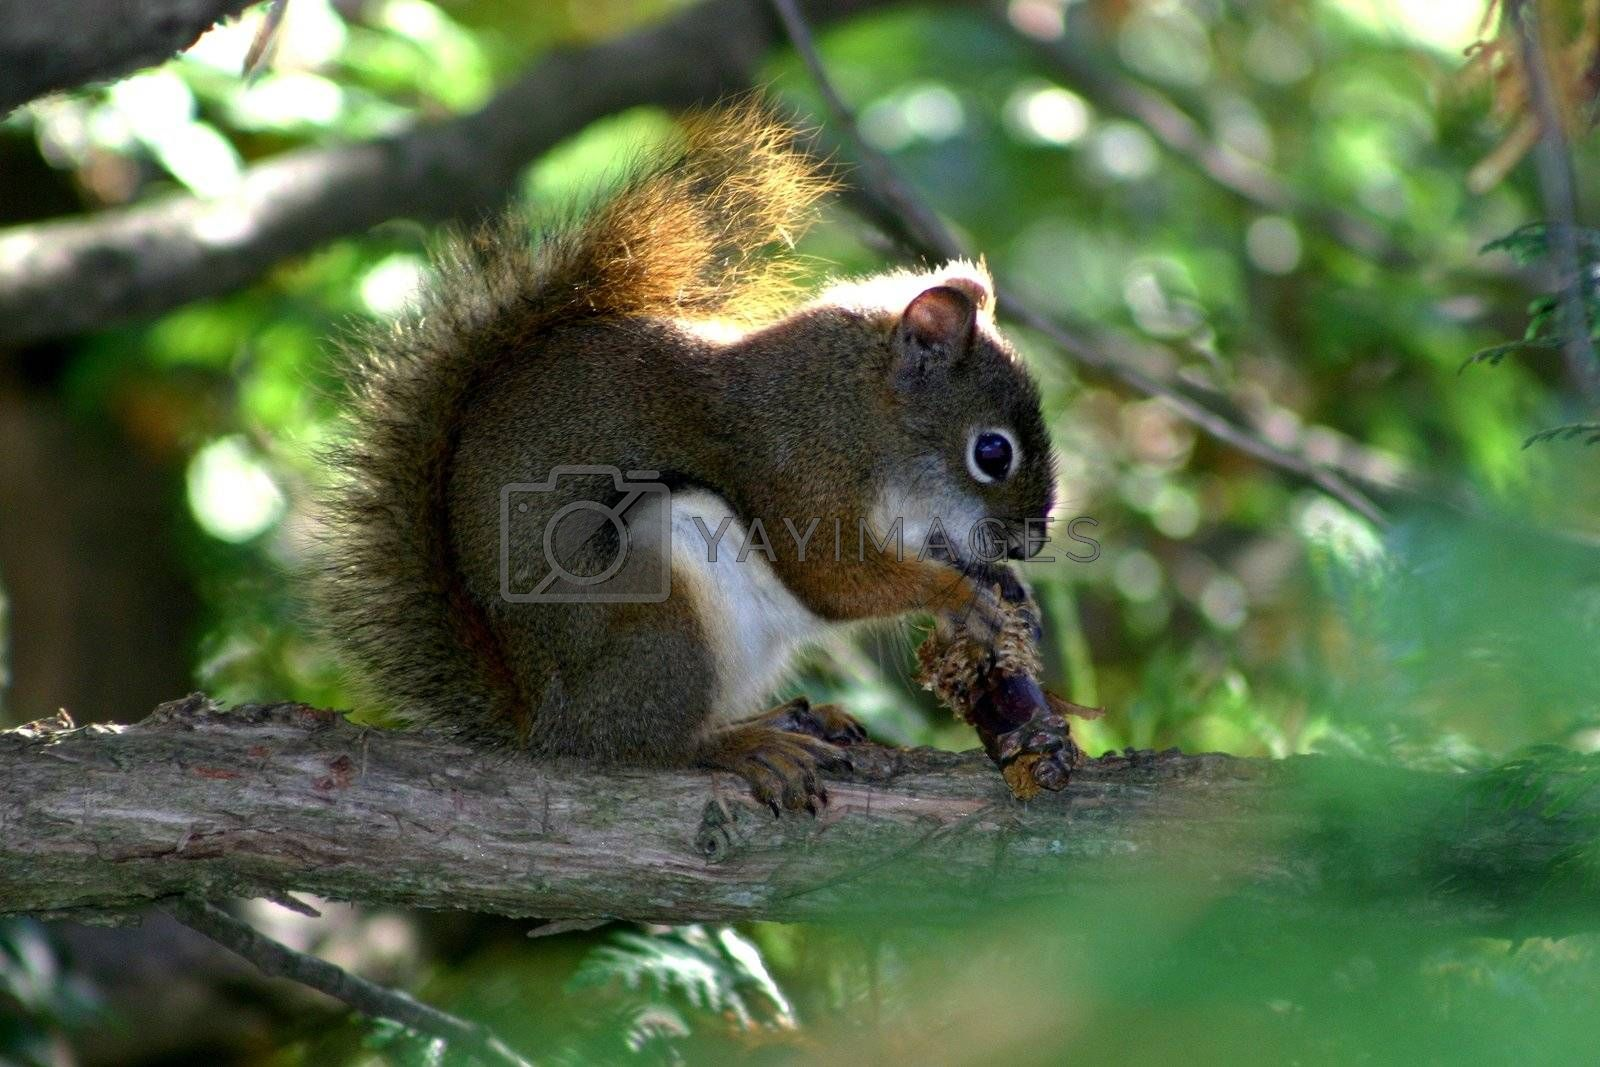 Squirrel on branch eating an acorn